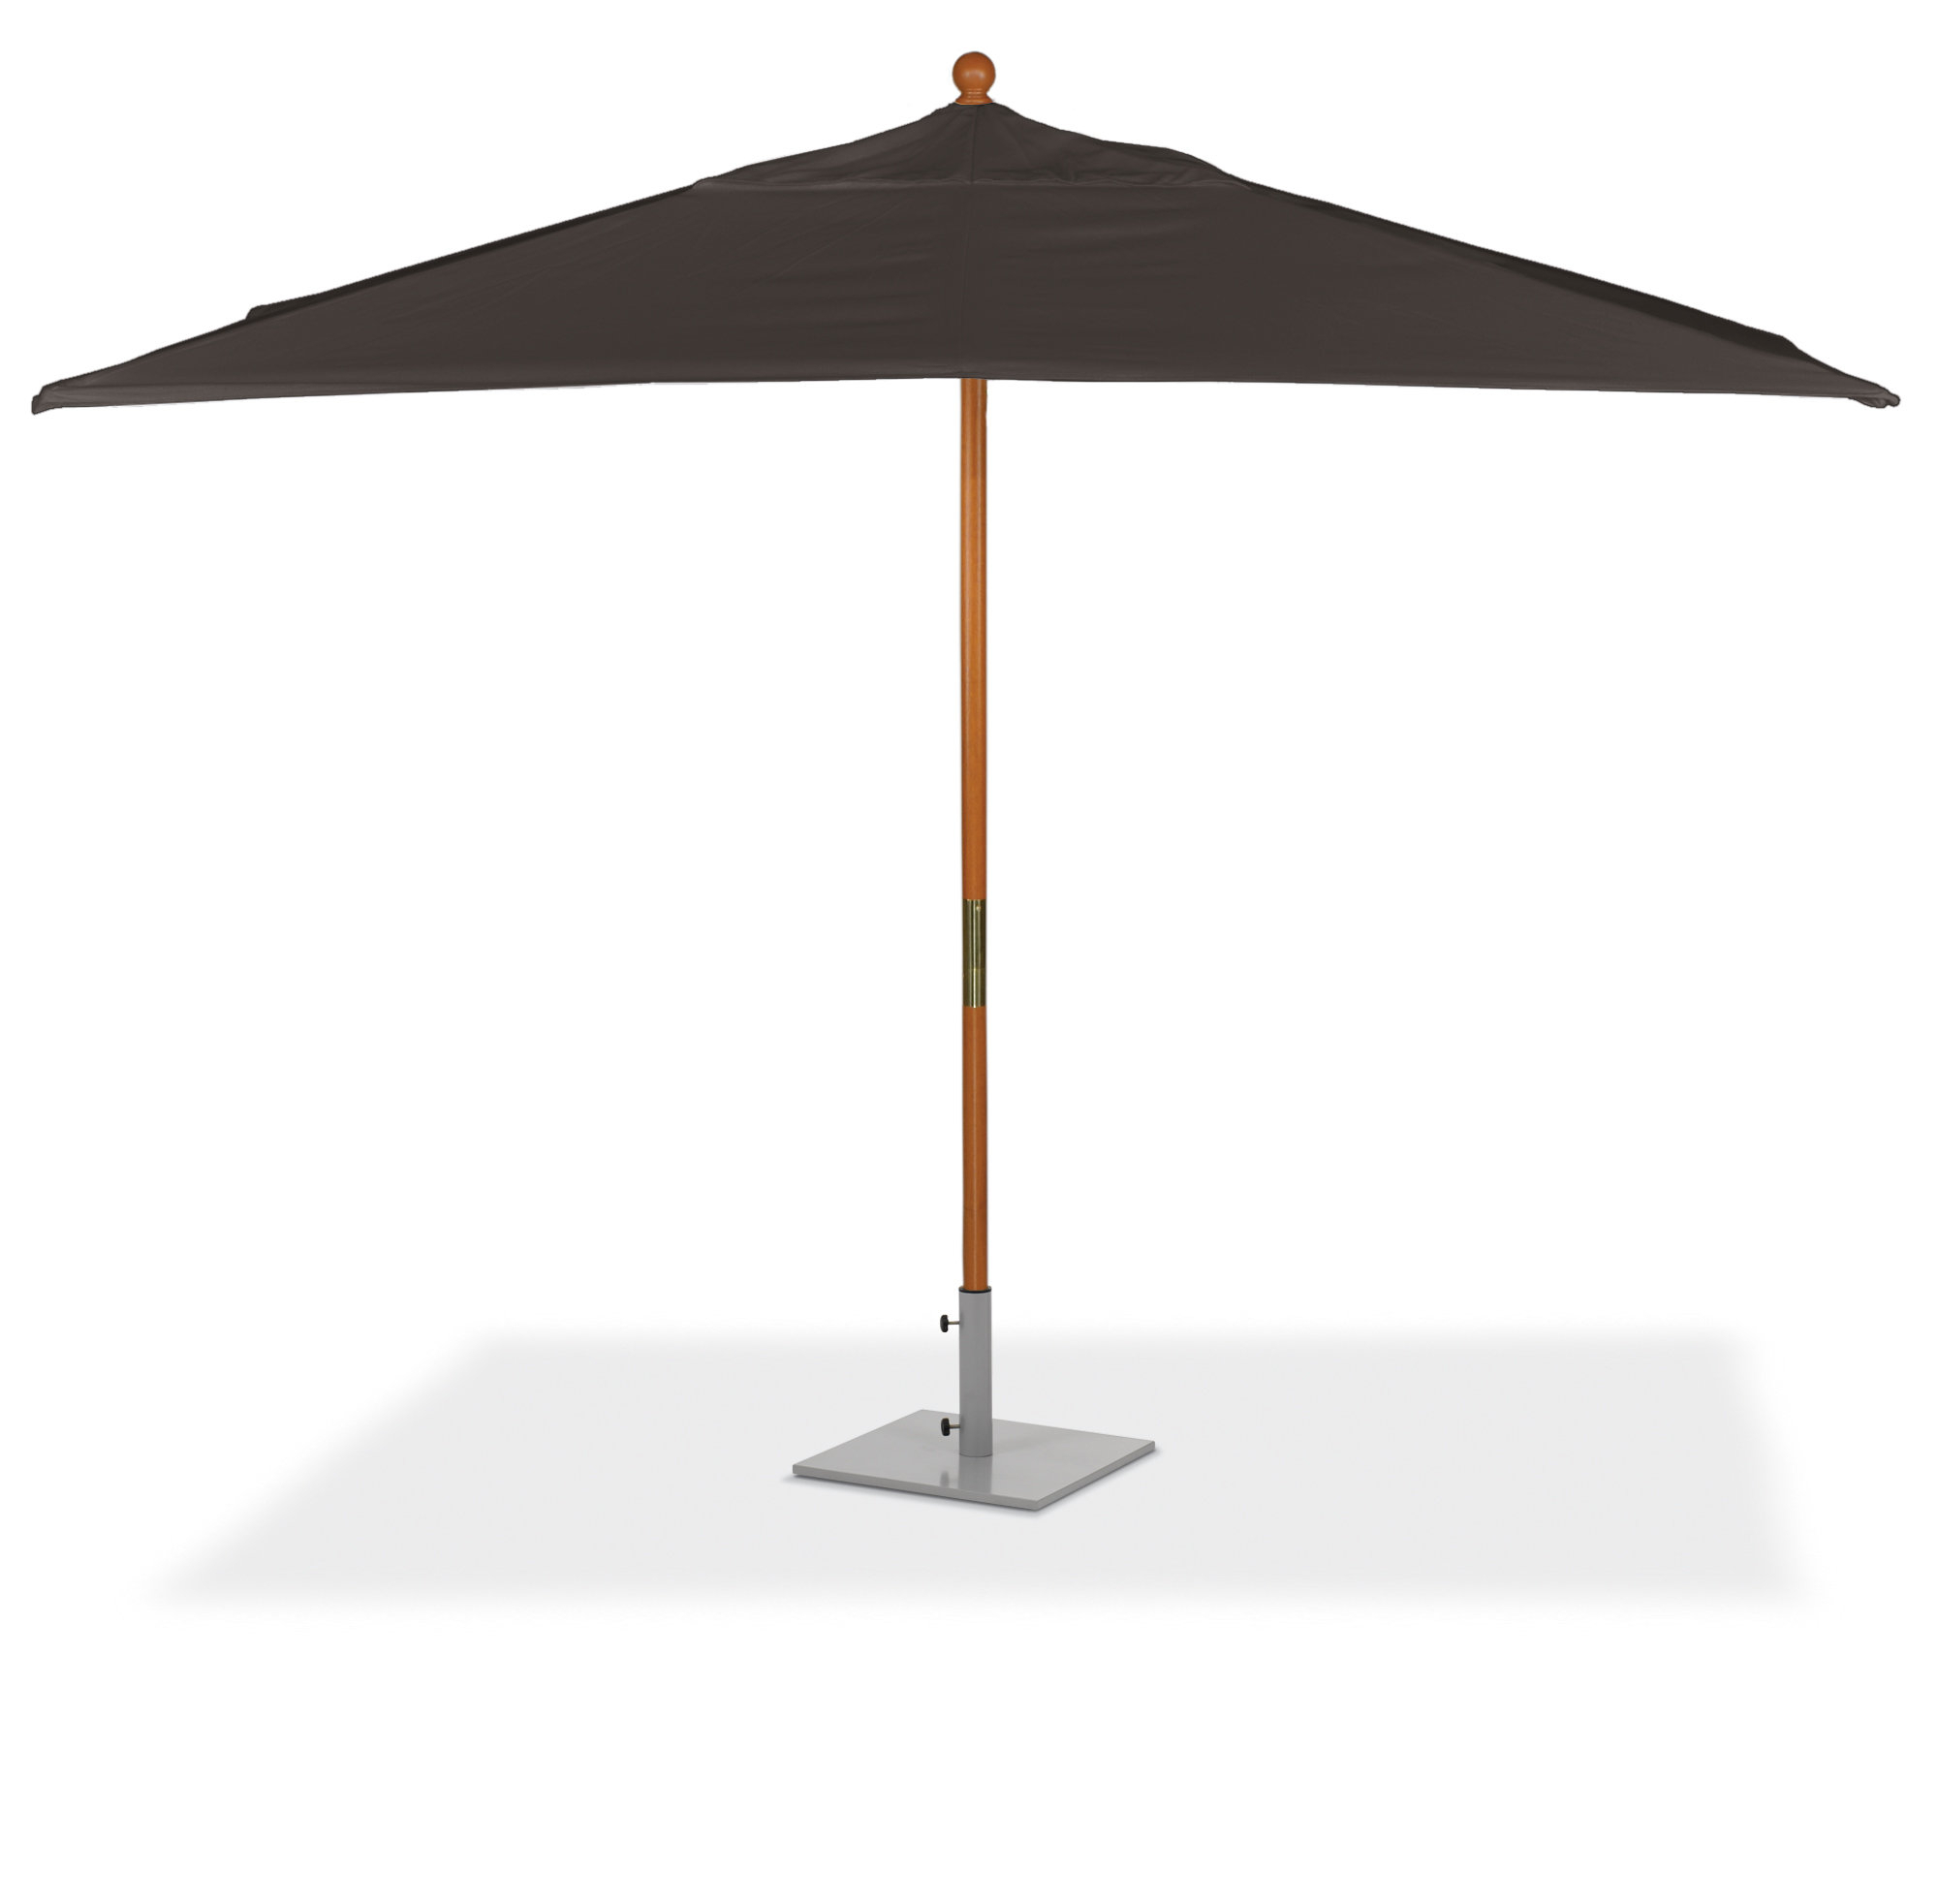 Bradford Rectangular Market Umbrellas For Well Known Standwood 6' X 10' Rectangular Market Sunbrella Umbrella (Gallery 5 of 20)